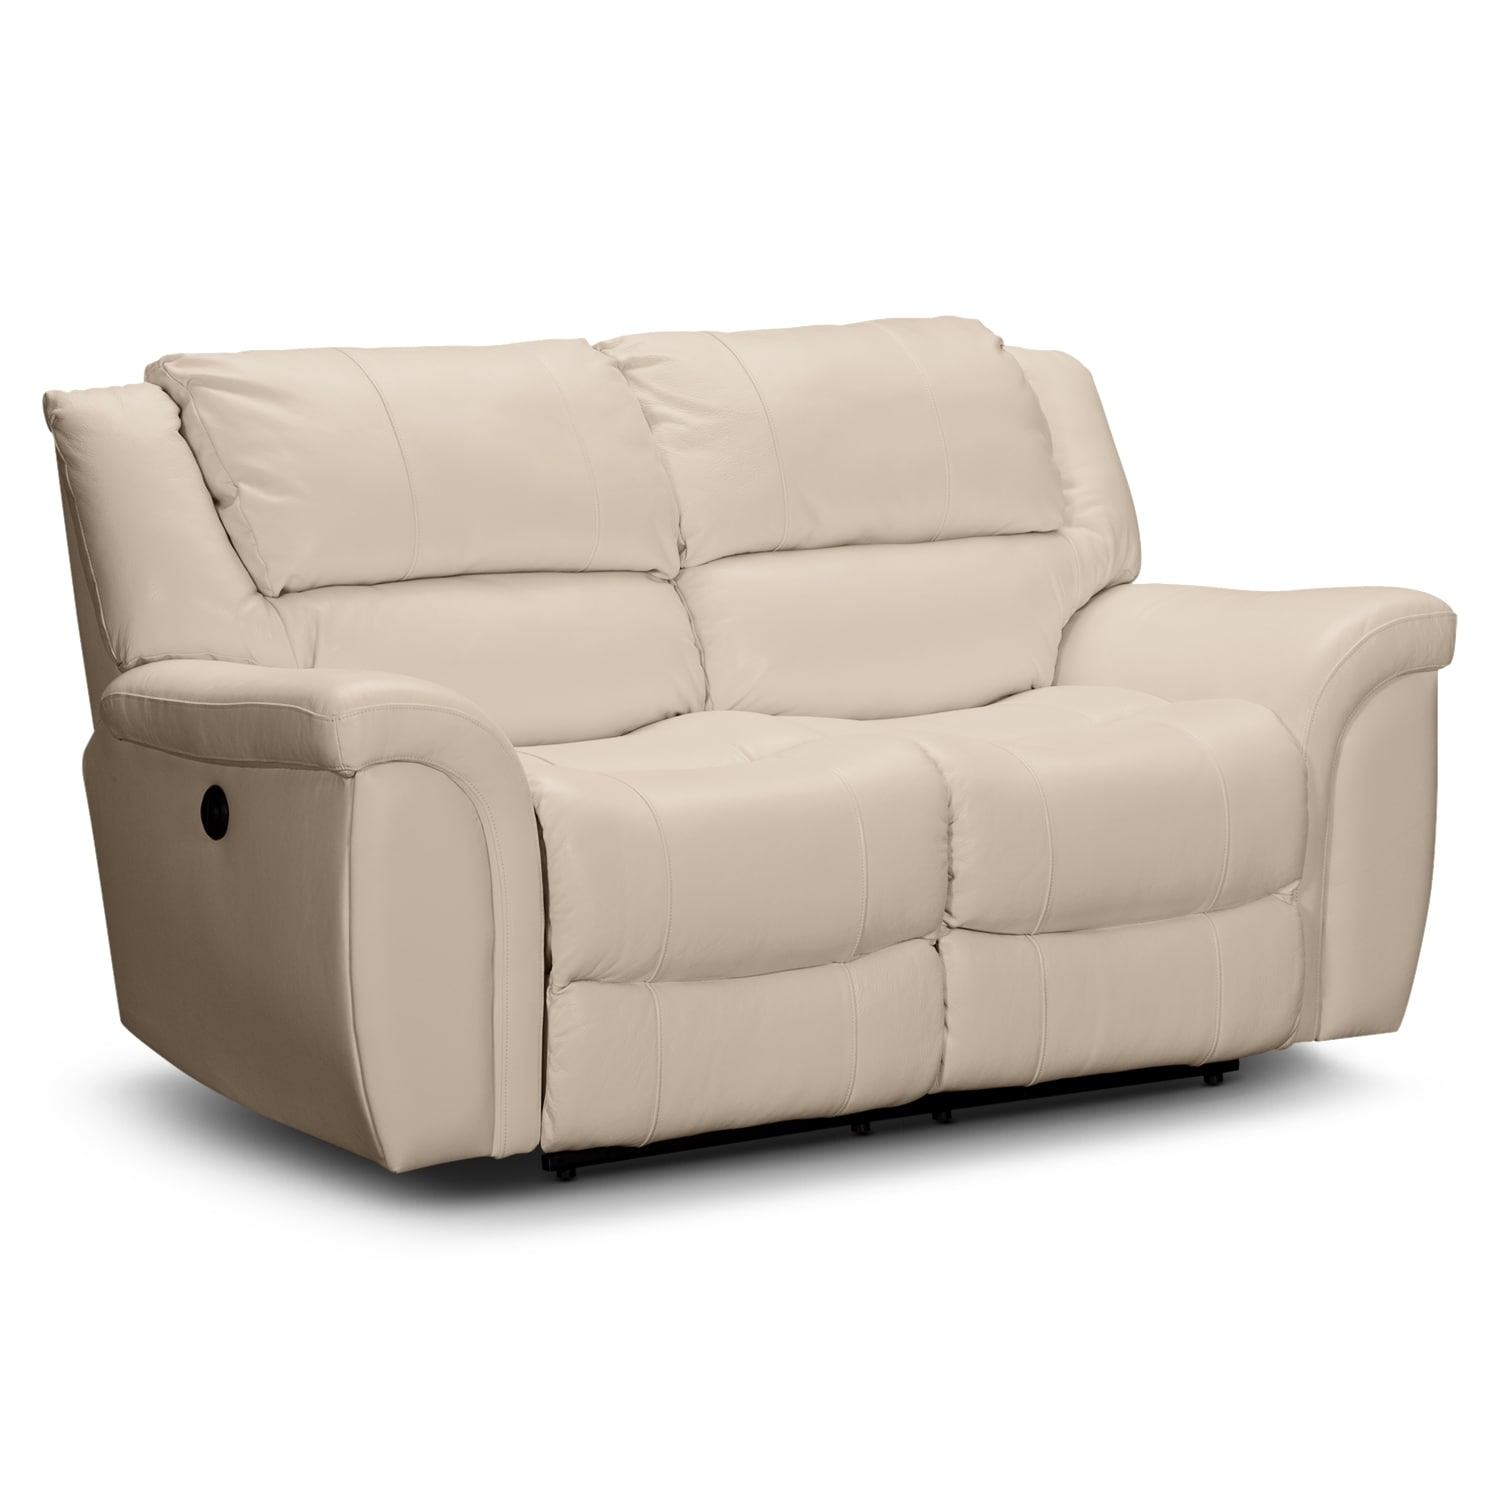 Furnishings for every room online and store furniture Reclining leather sofa and loveseat